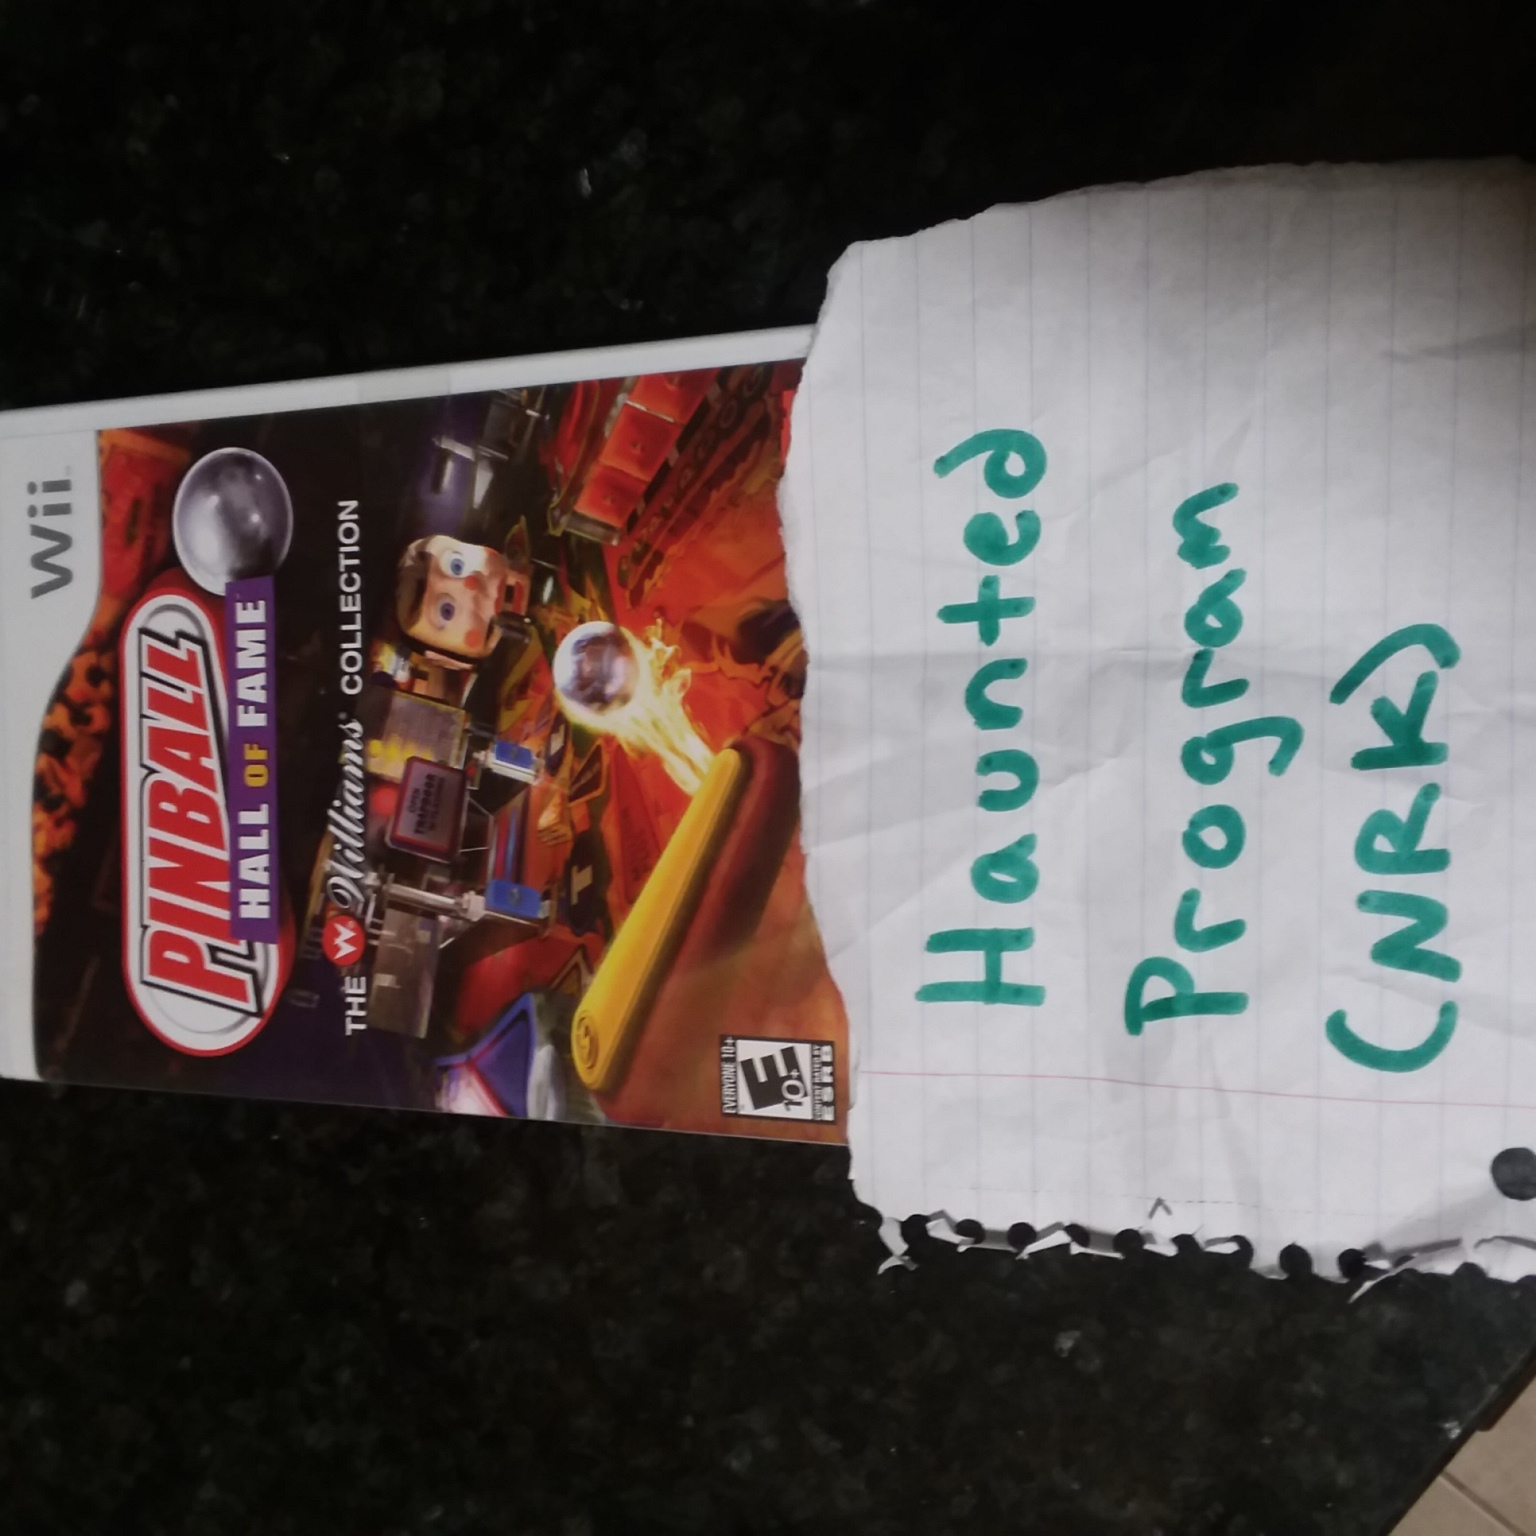 Hauntedprogram: Pinball Hall of Fame: The Williams Collection: Gorgar (Wii) 477,050 points on 2020-11-11 22:30:31